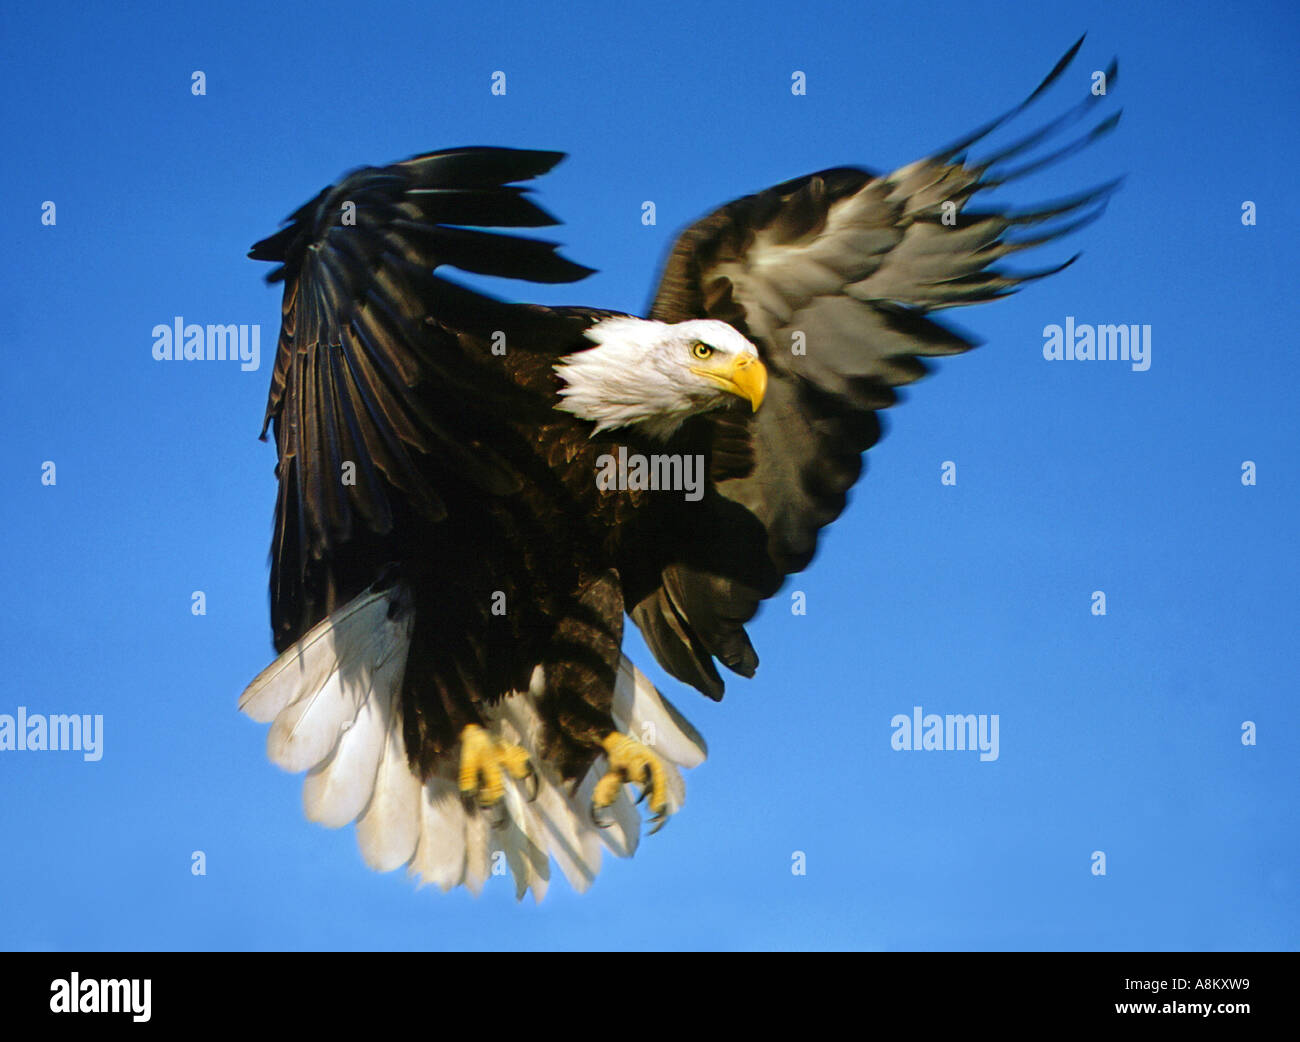 usa idaho american bald eagle landing with tallons out in